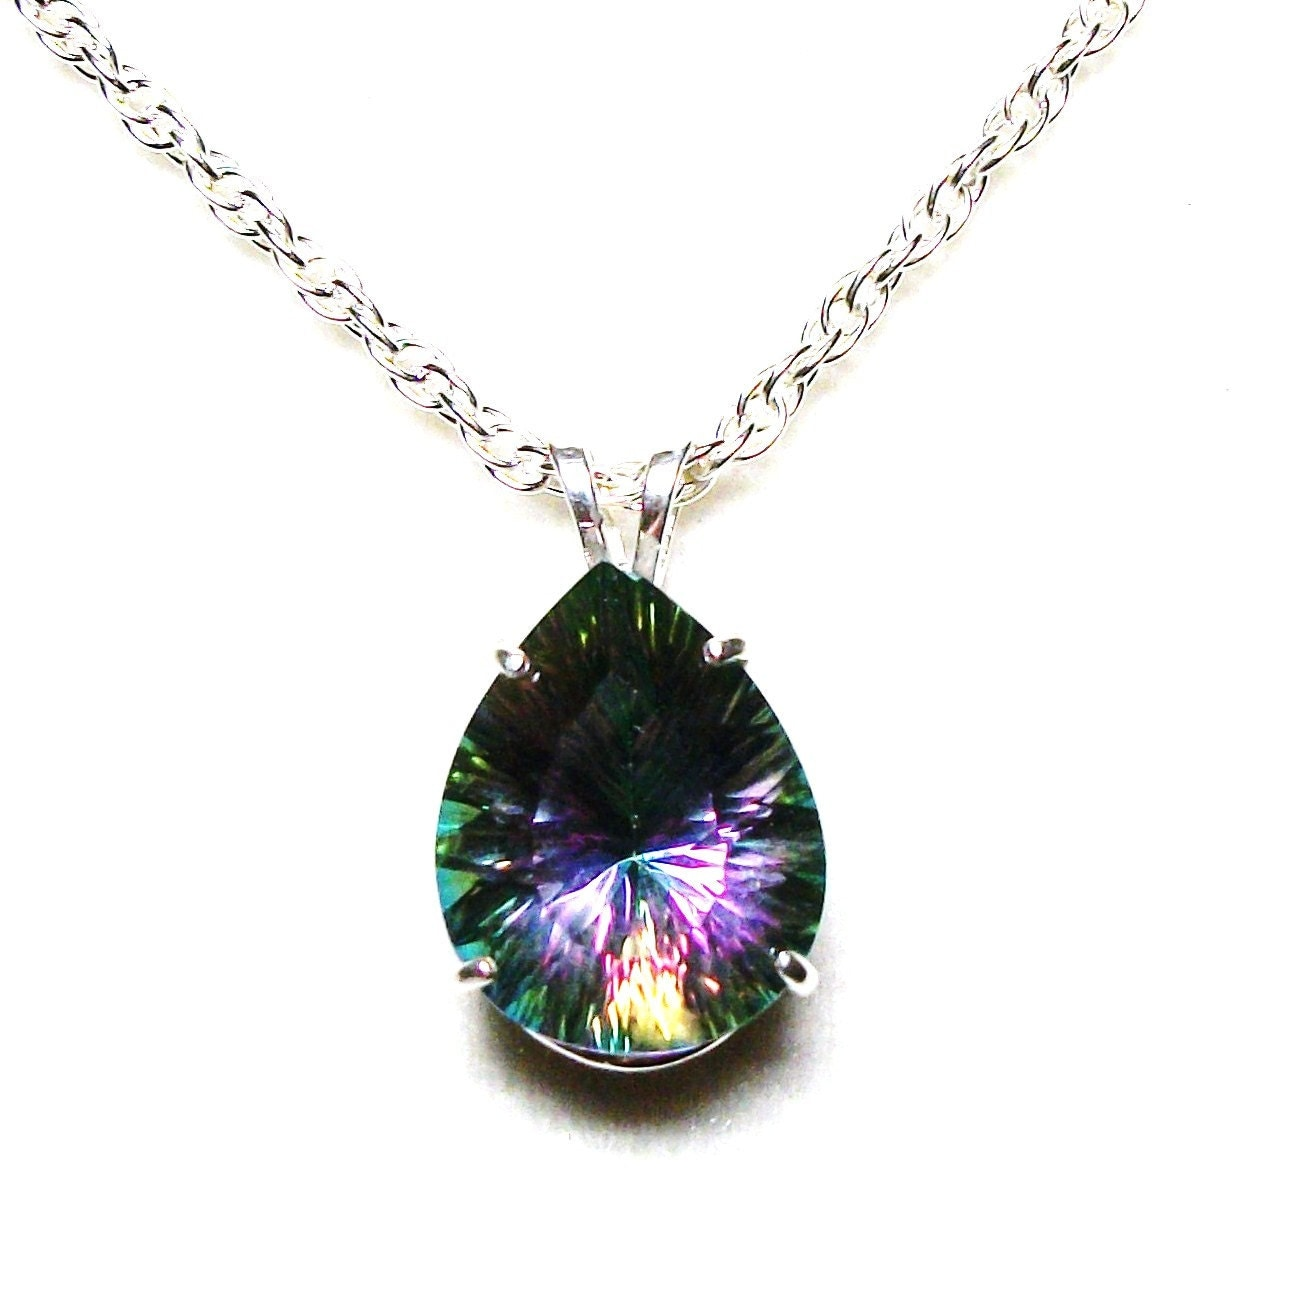 Mystic Topaz Mystic Topaz Pendant Rainbow By Michaelangelas. Tourmaline Earrings. Sterling Silver Bangle Bracelets For Small Wrists. Serpent Bracelet. Fancy Beads For Jewelry Making. Memory Necklace. Inset Diamond Engagement Rings. Engagment Rings. Customised Pendant